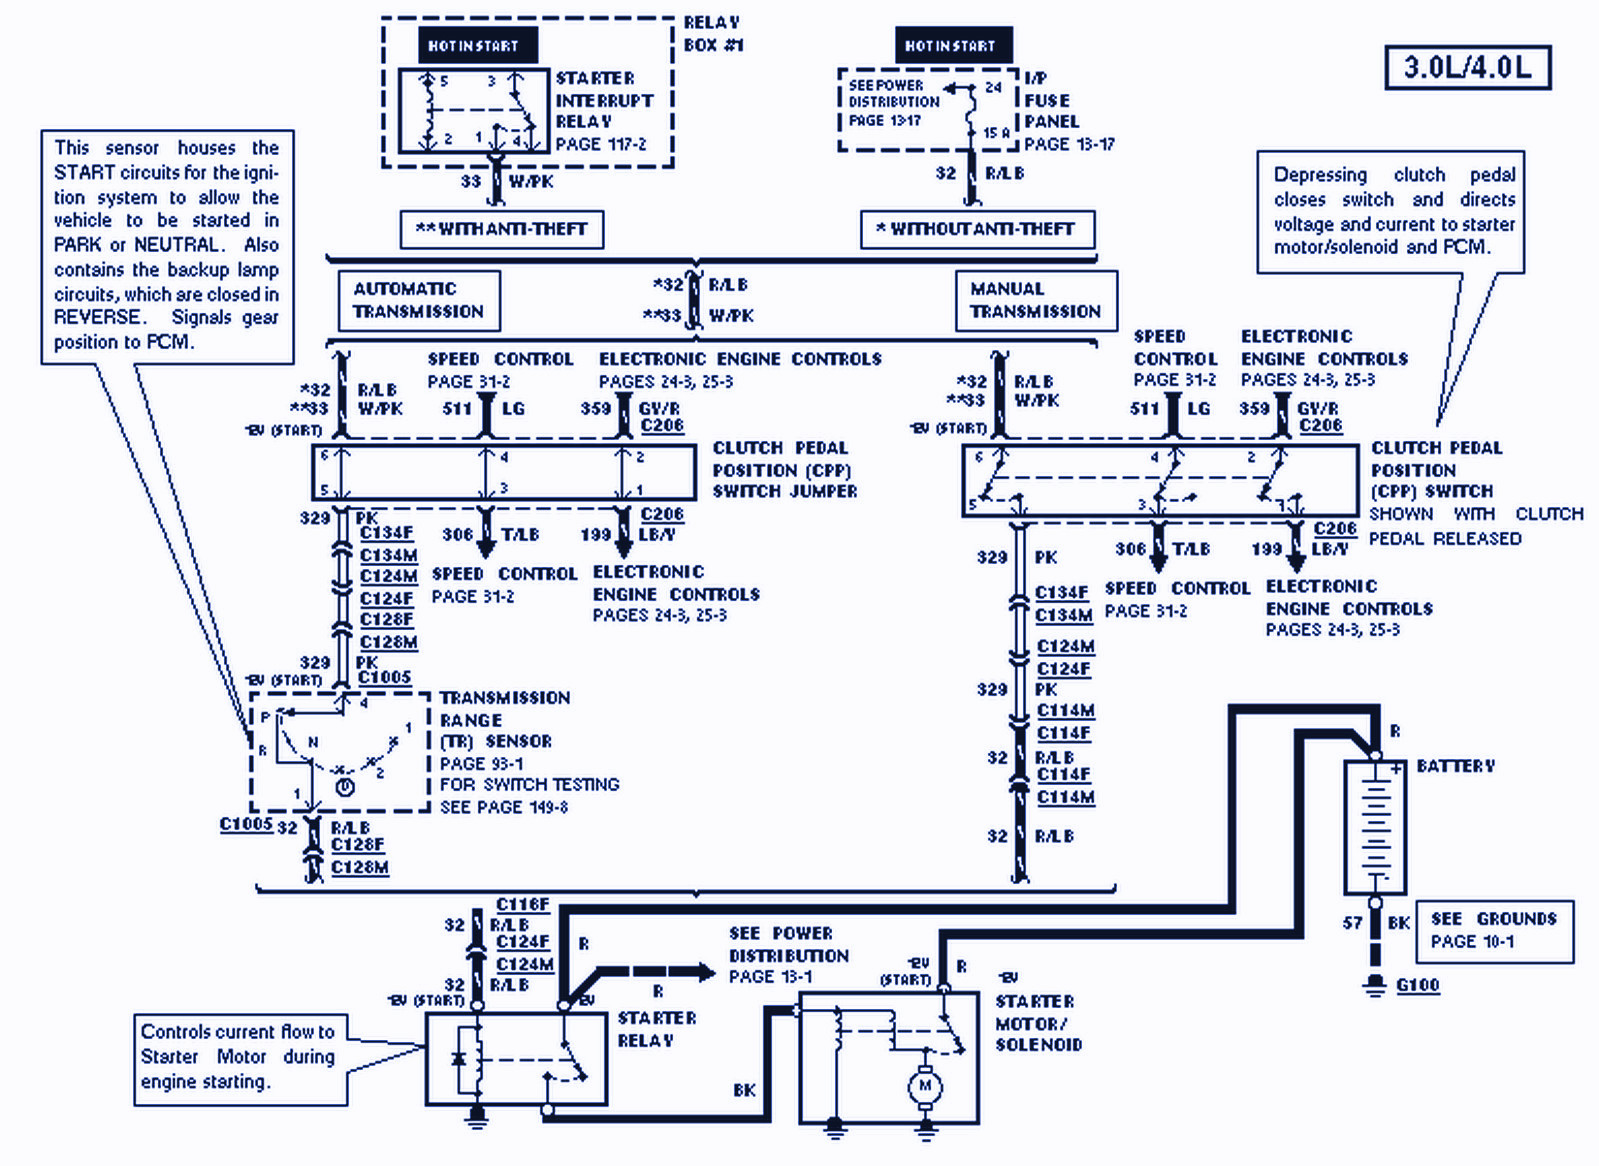 DIAGRAM] 95 Ford Ranger Wiring Diagram FULL Version HD Quality Wiring  Diagram - XSCHEMATIC.ANTONIOVERGARA.ITAntonio Vergara